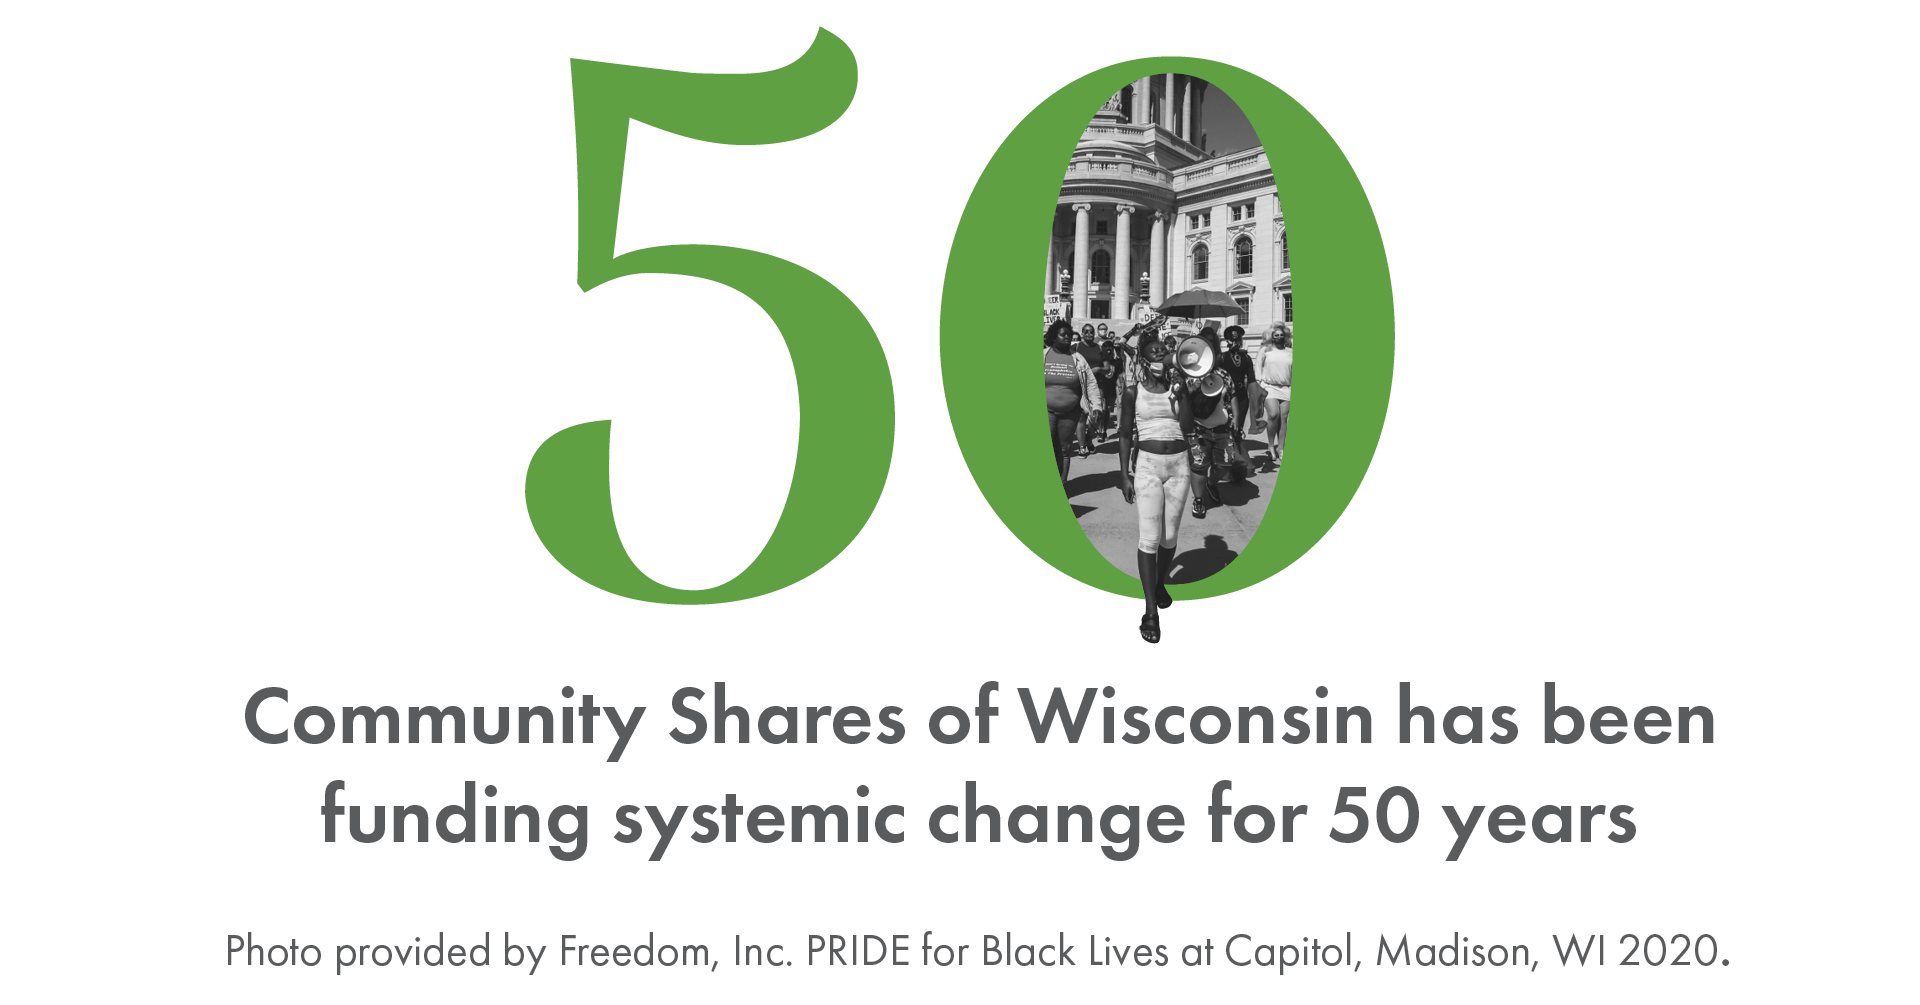 Community Shares of Wisconsin has been funding systemic change for 50 years